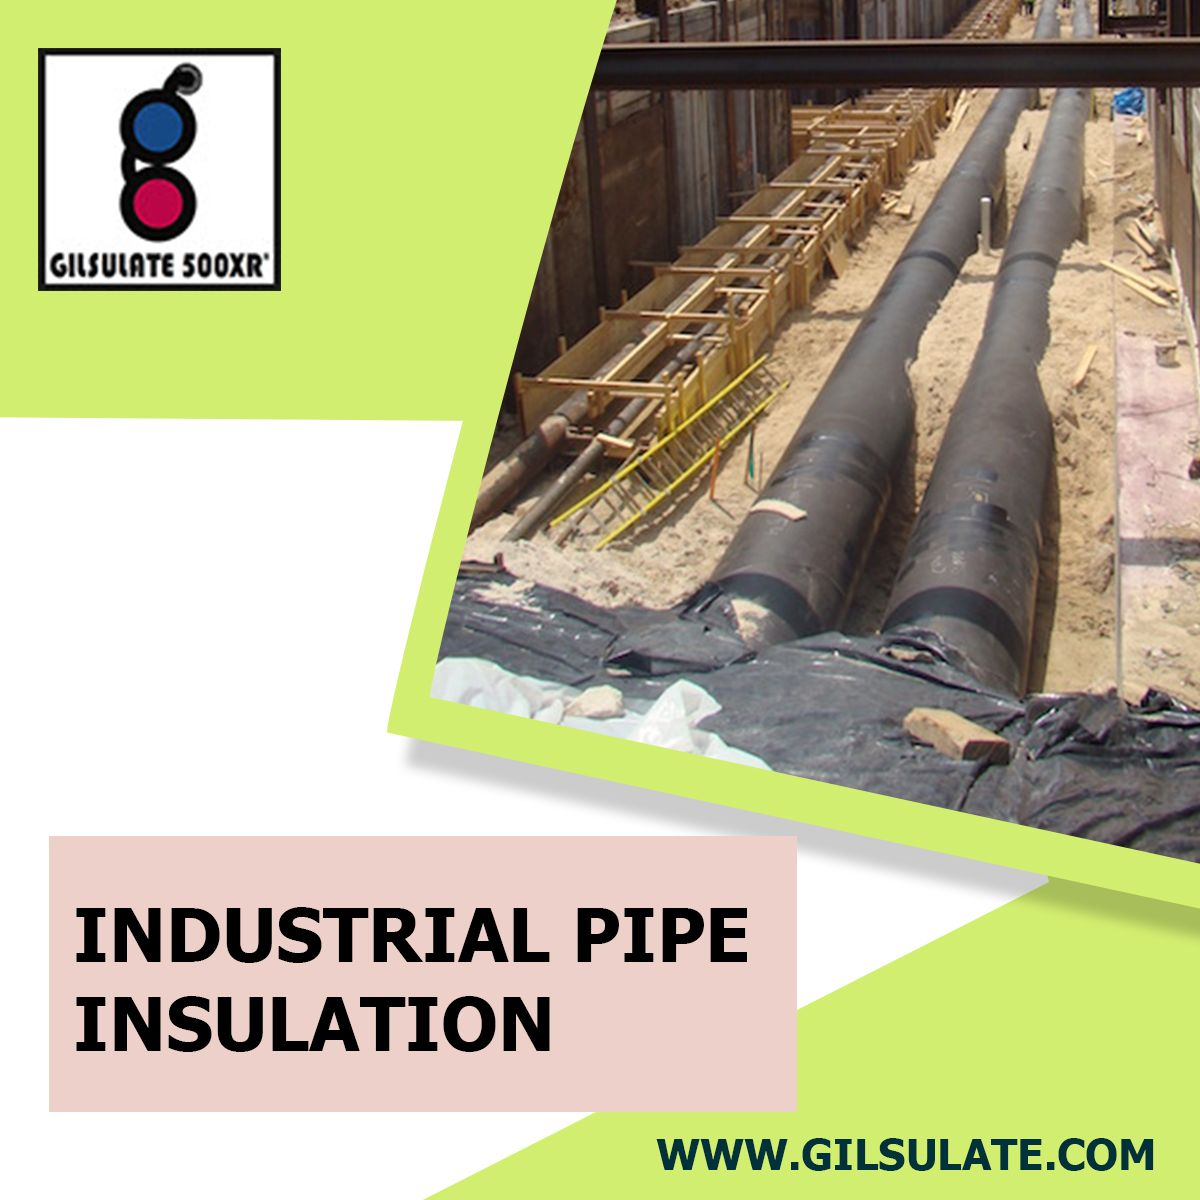 Pin On Industrial Pipe Insulation